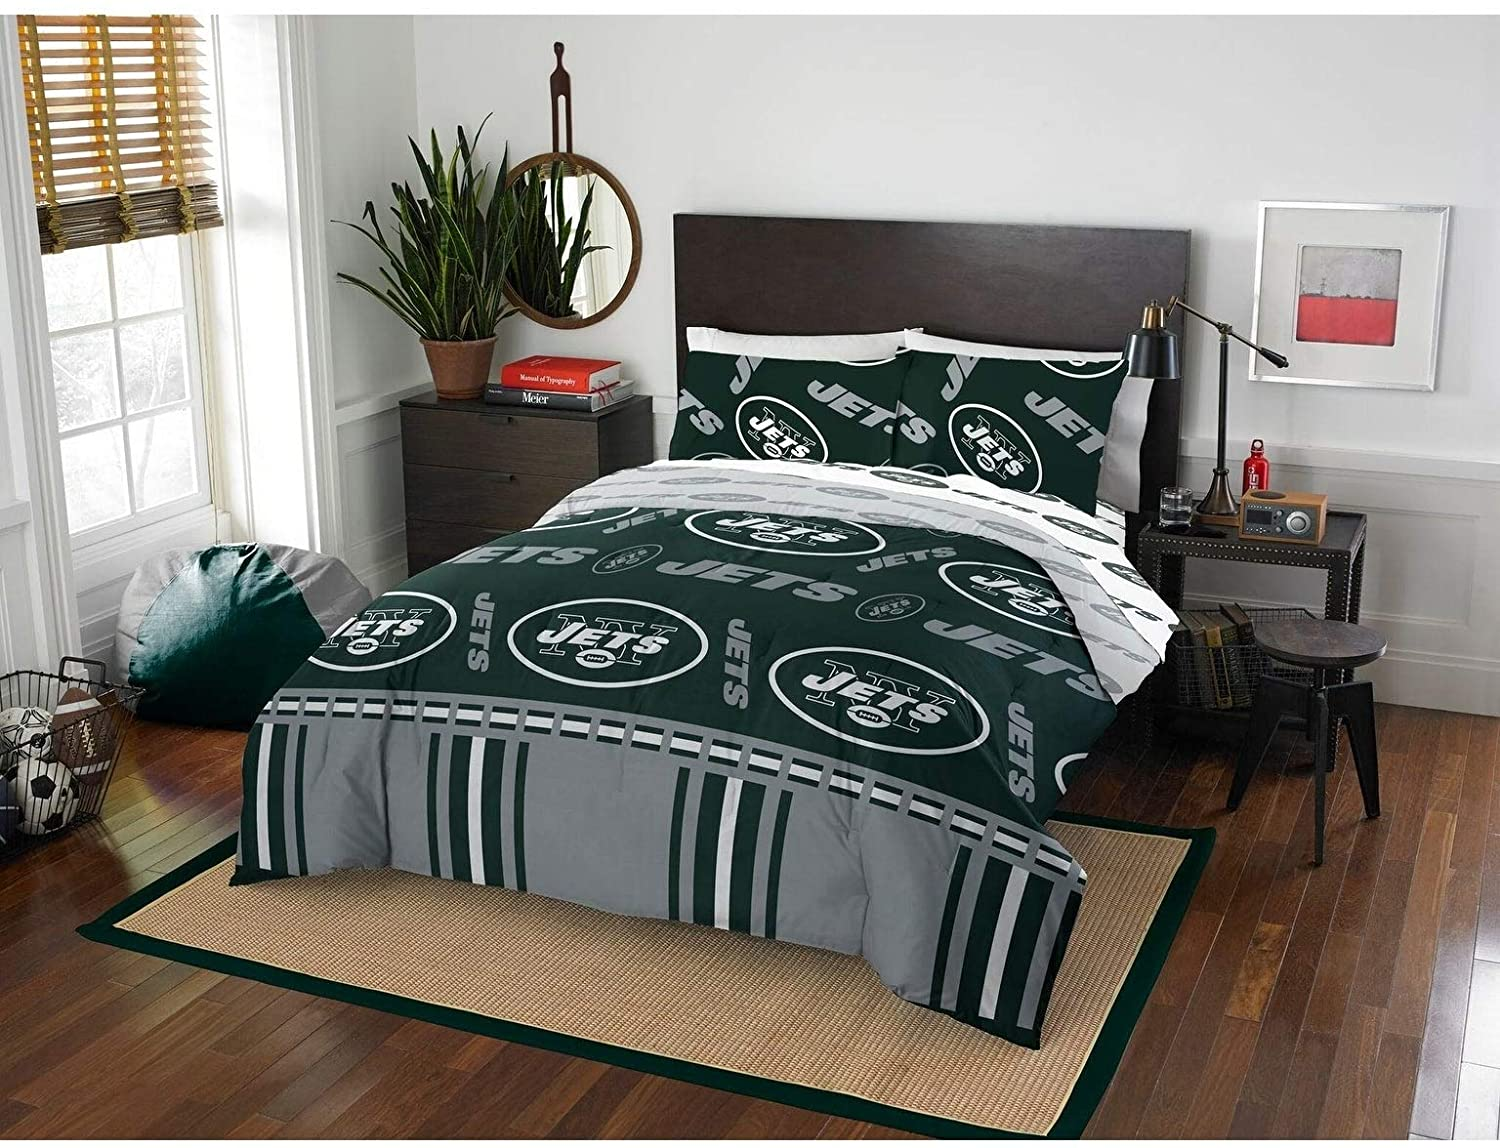 MISC 5 Piece Jets Comforter & Sheets Set Full Football Sports Bedding Boys Kids Bedroom Team Logo Printed Collegiate Pattern Home Decor Game Fans Gift